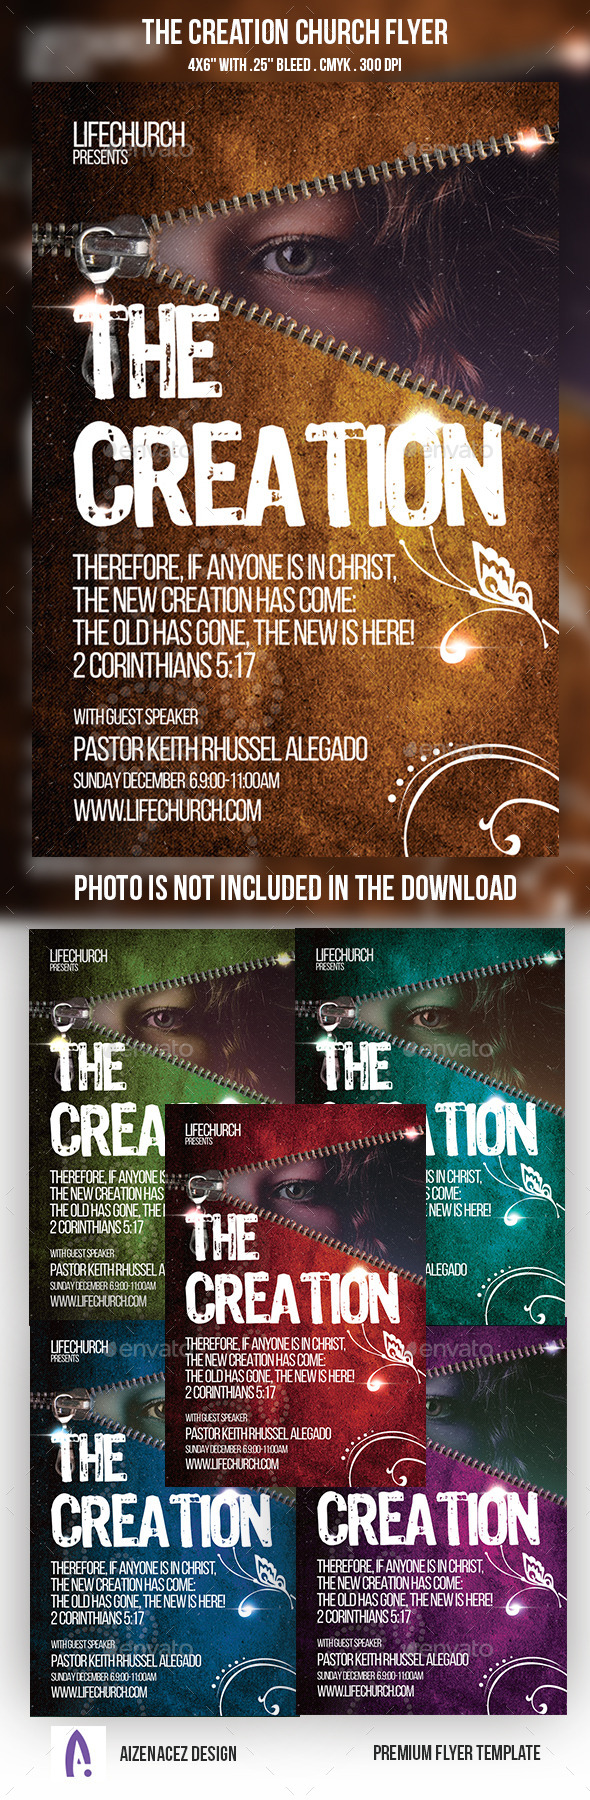 The Creation Church Flyer - Church Flyers